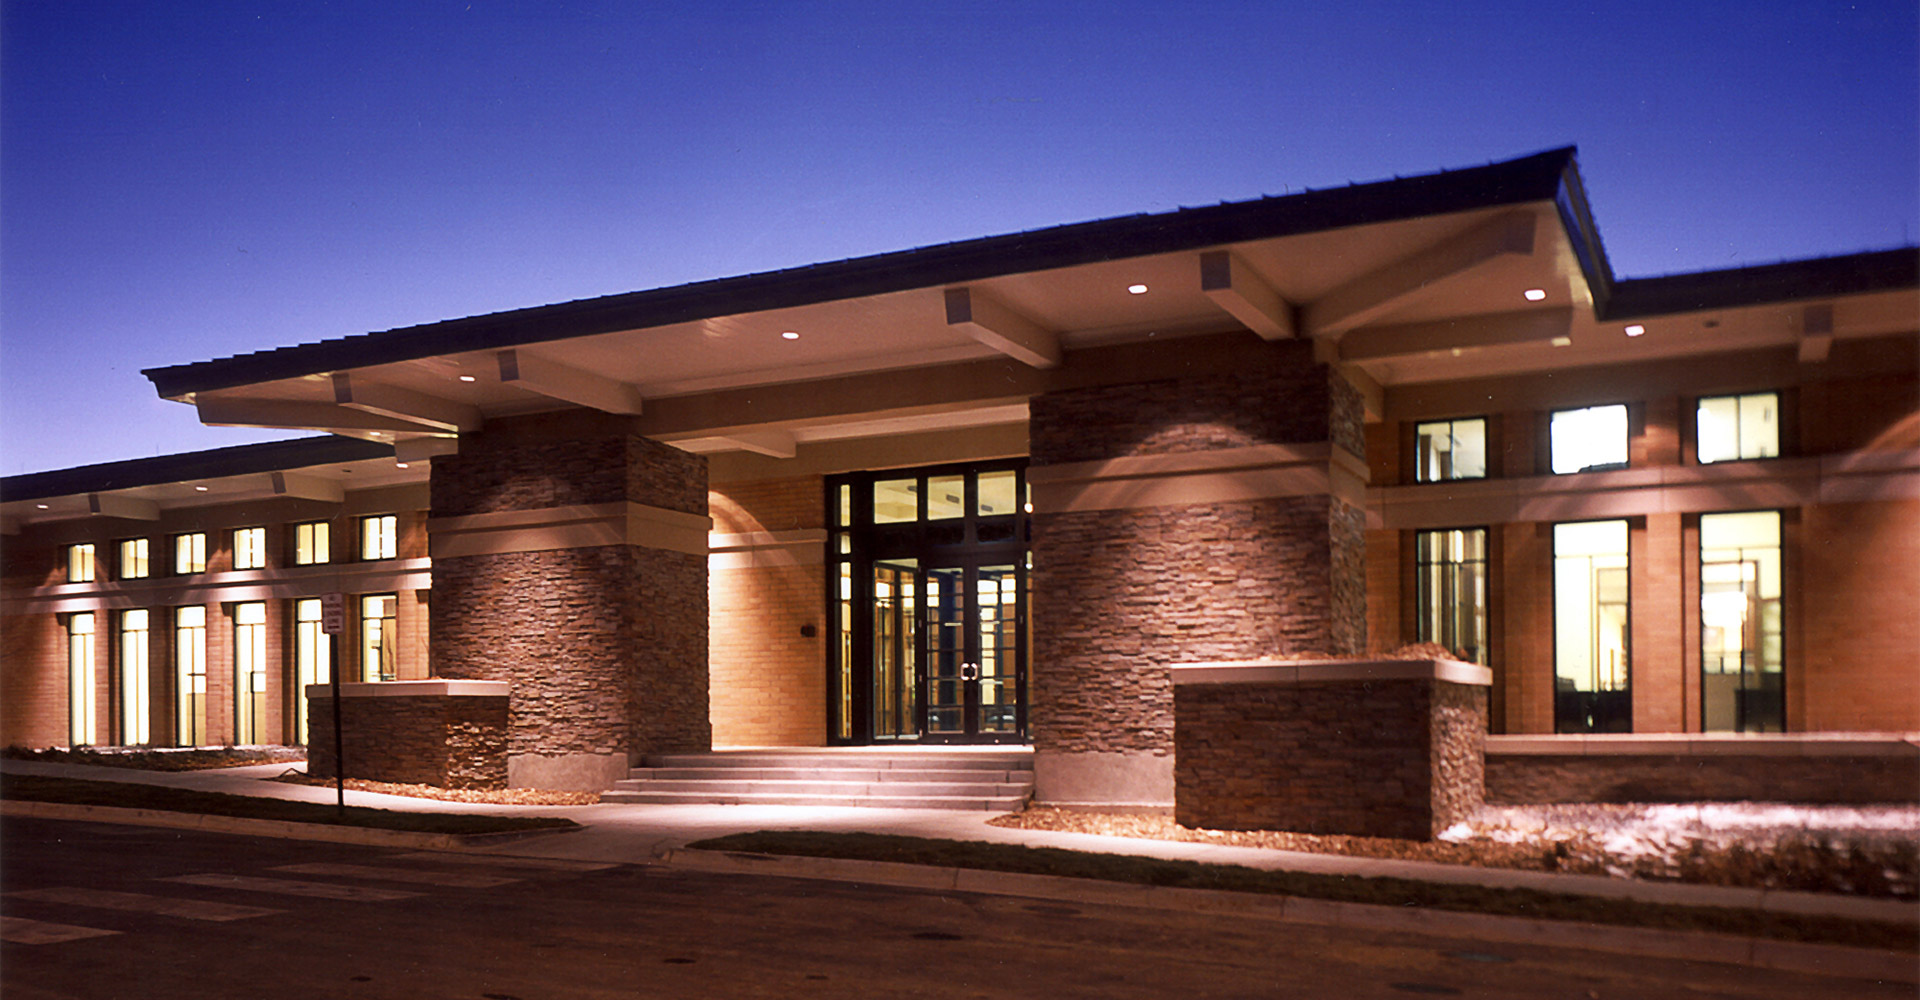 Exterior entrance of ADT Denver office at night.